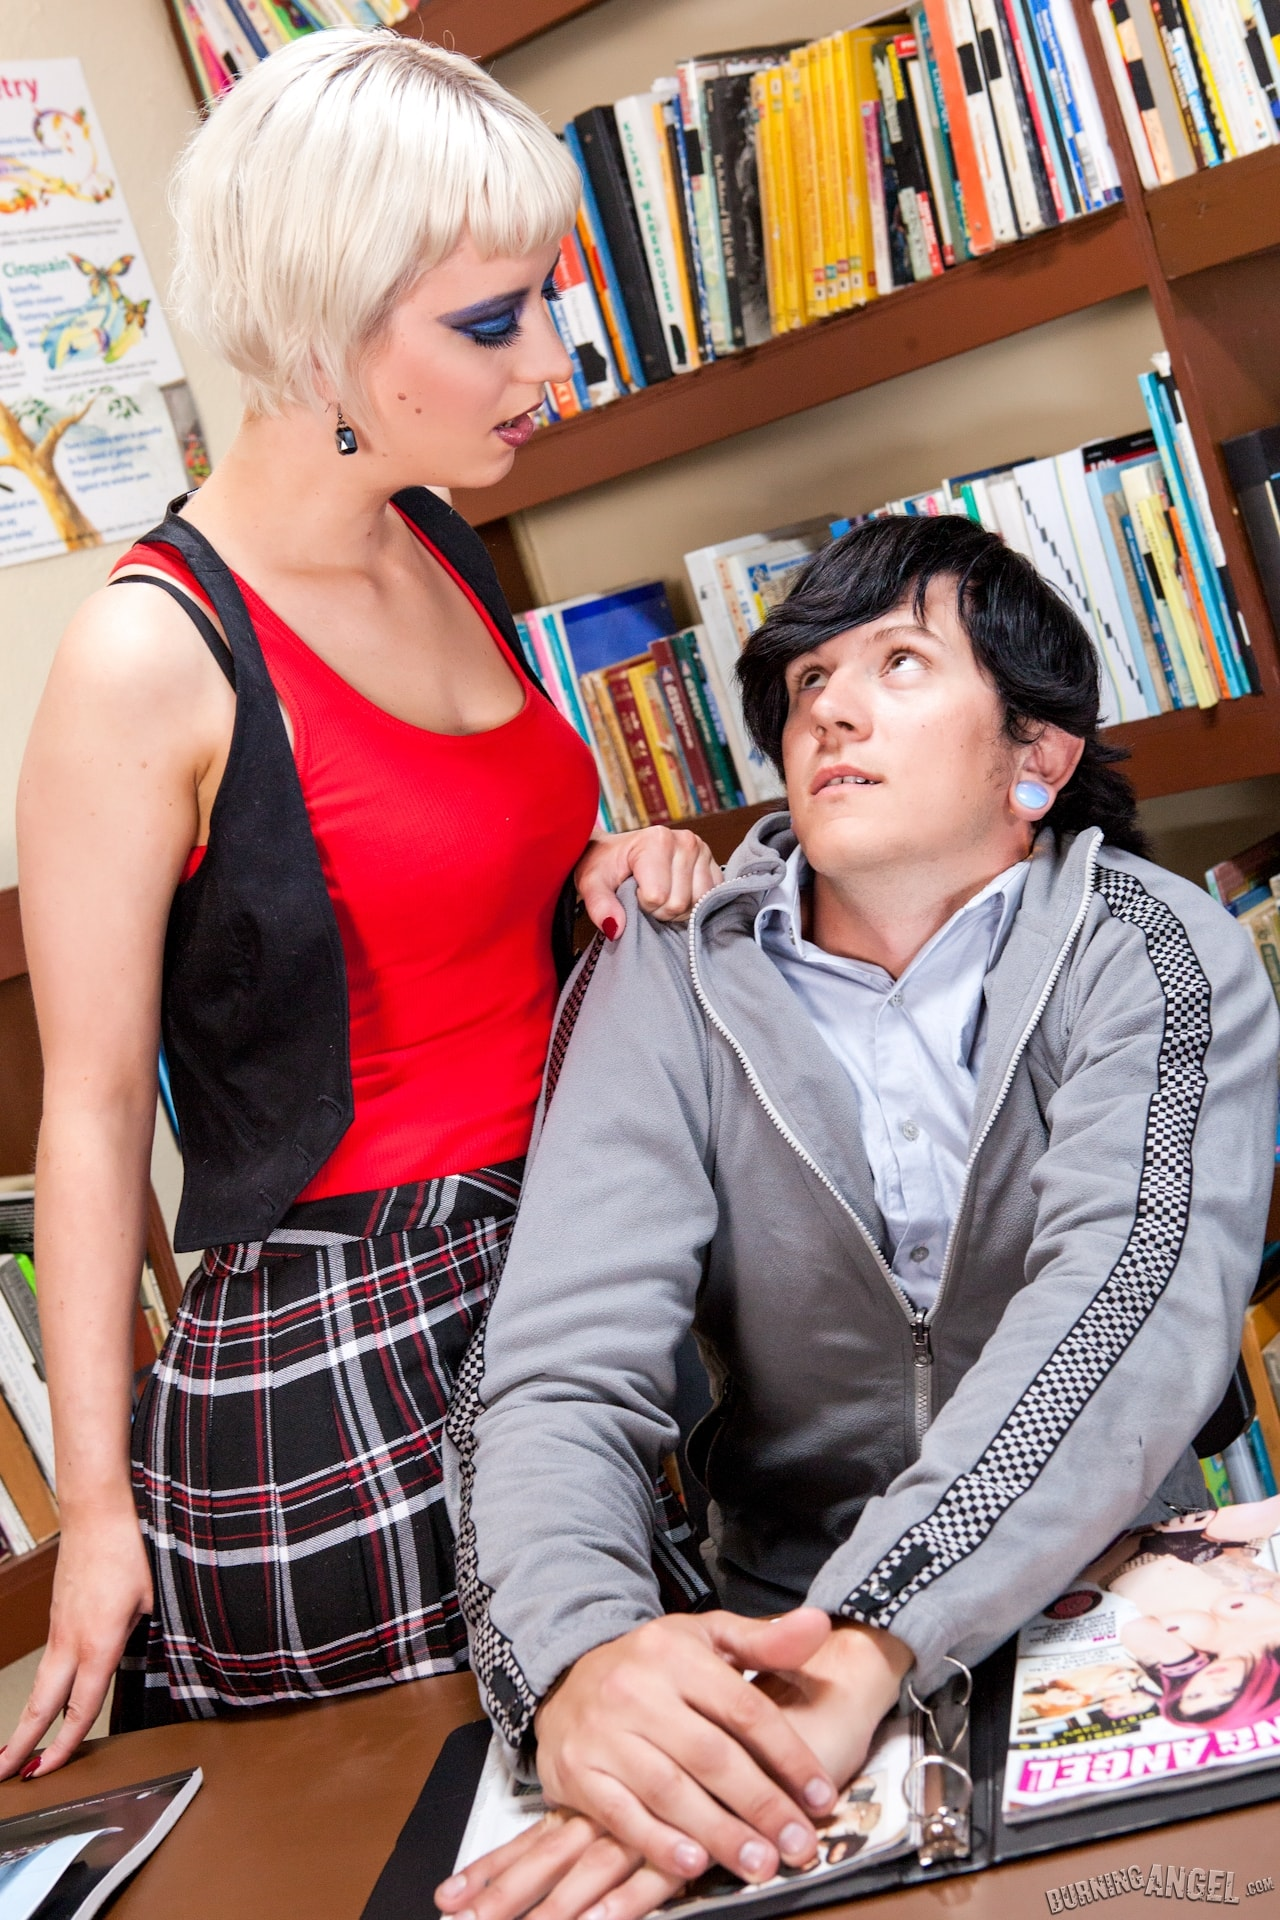 Burning Angel 'Learn Your Holes' starring Cherry Torn (Photo 3)